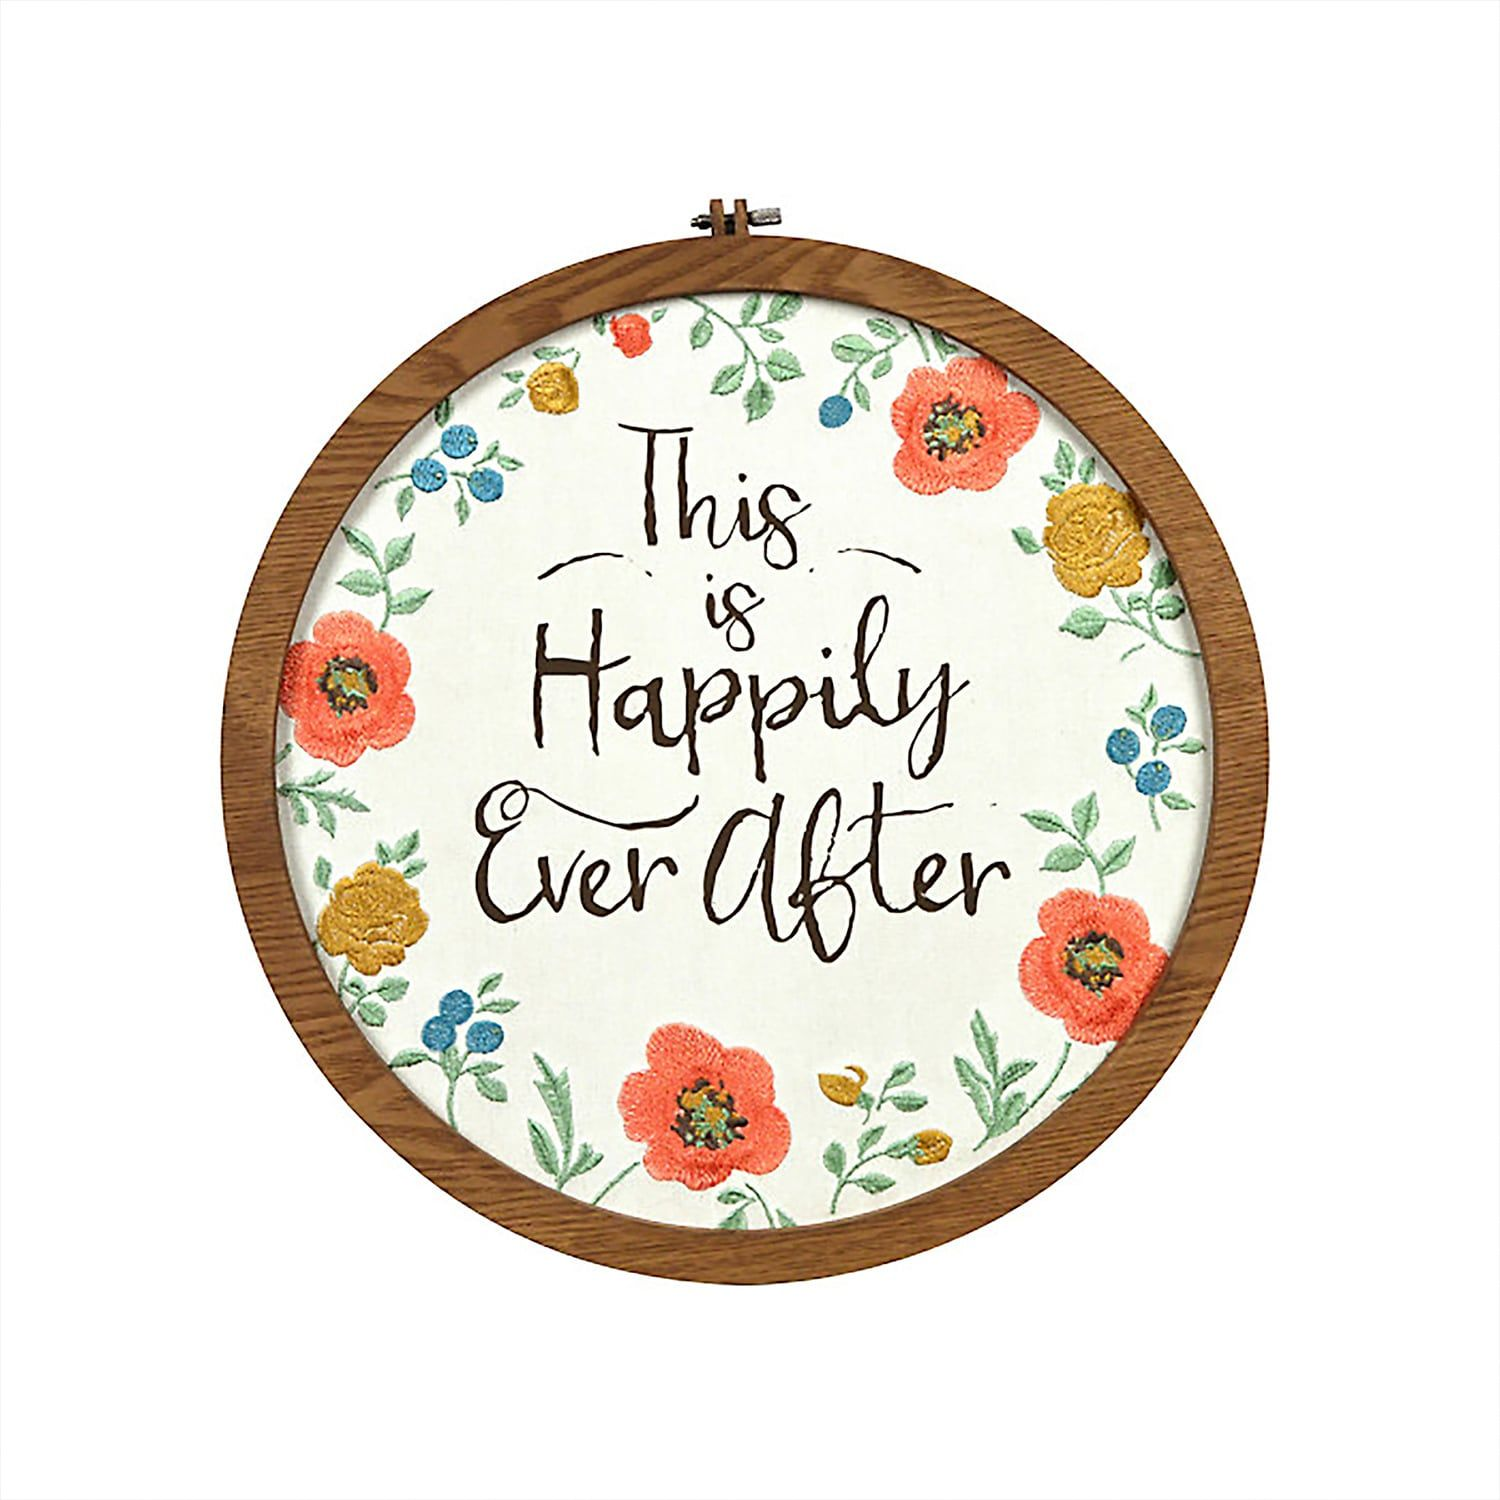 New View Happily Ever After Embroidery Hoop Wall Art Affiliate Embroidery Happily View Art In 2020 Embroidery Hoop Wall Art Embroidery Hoop Wall Wall Art